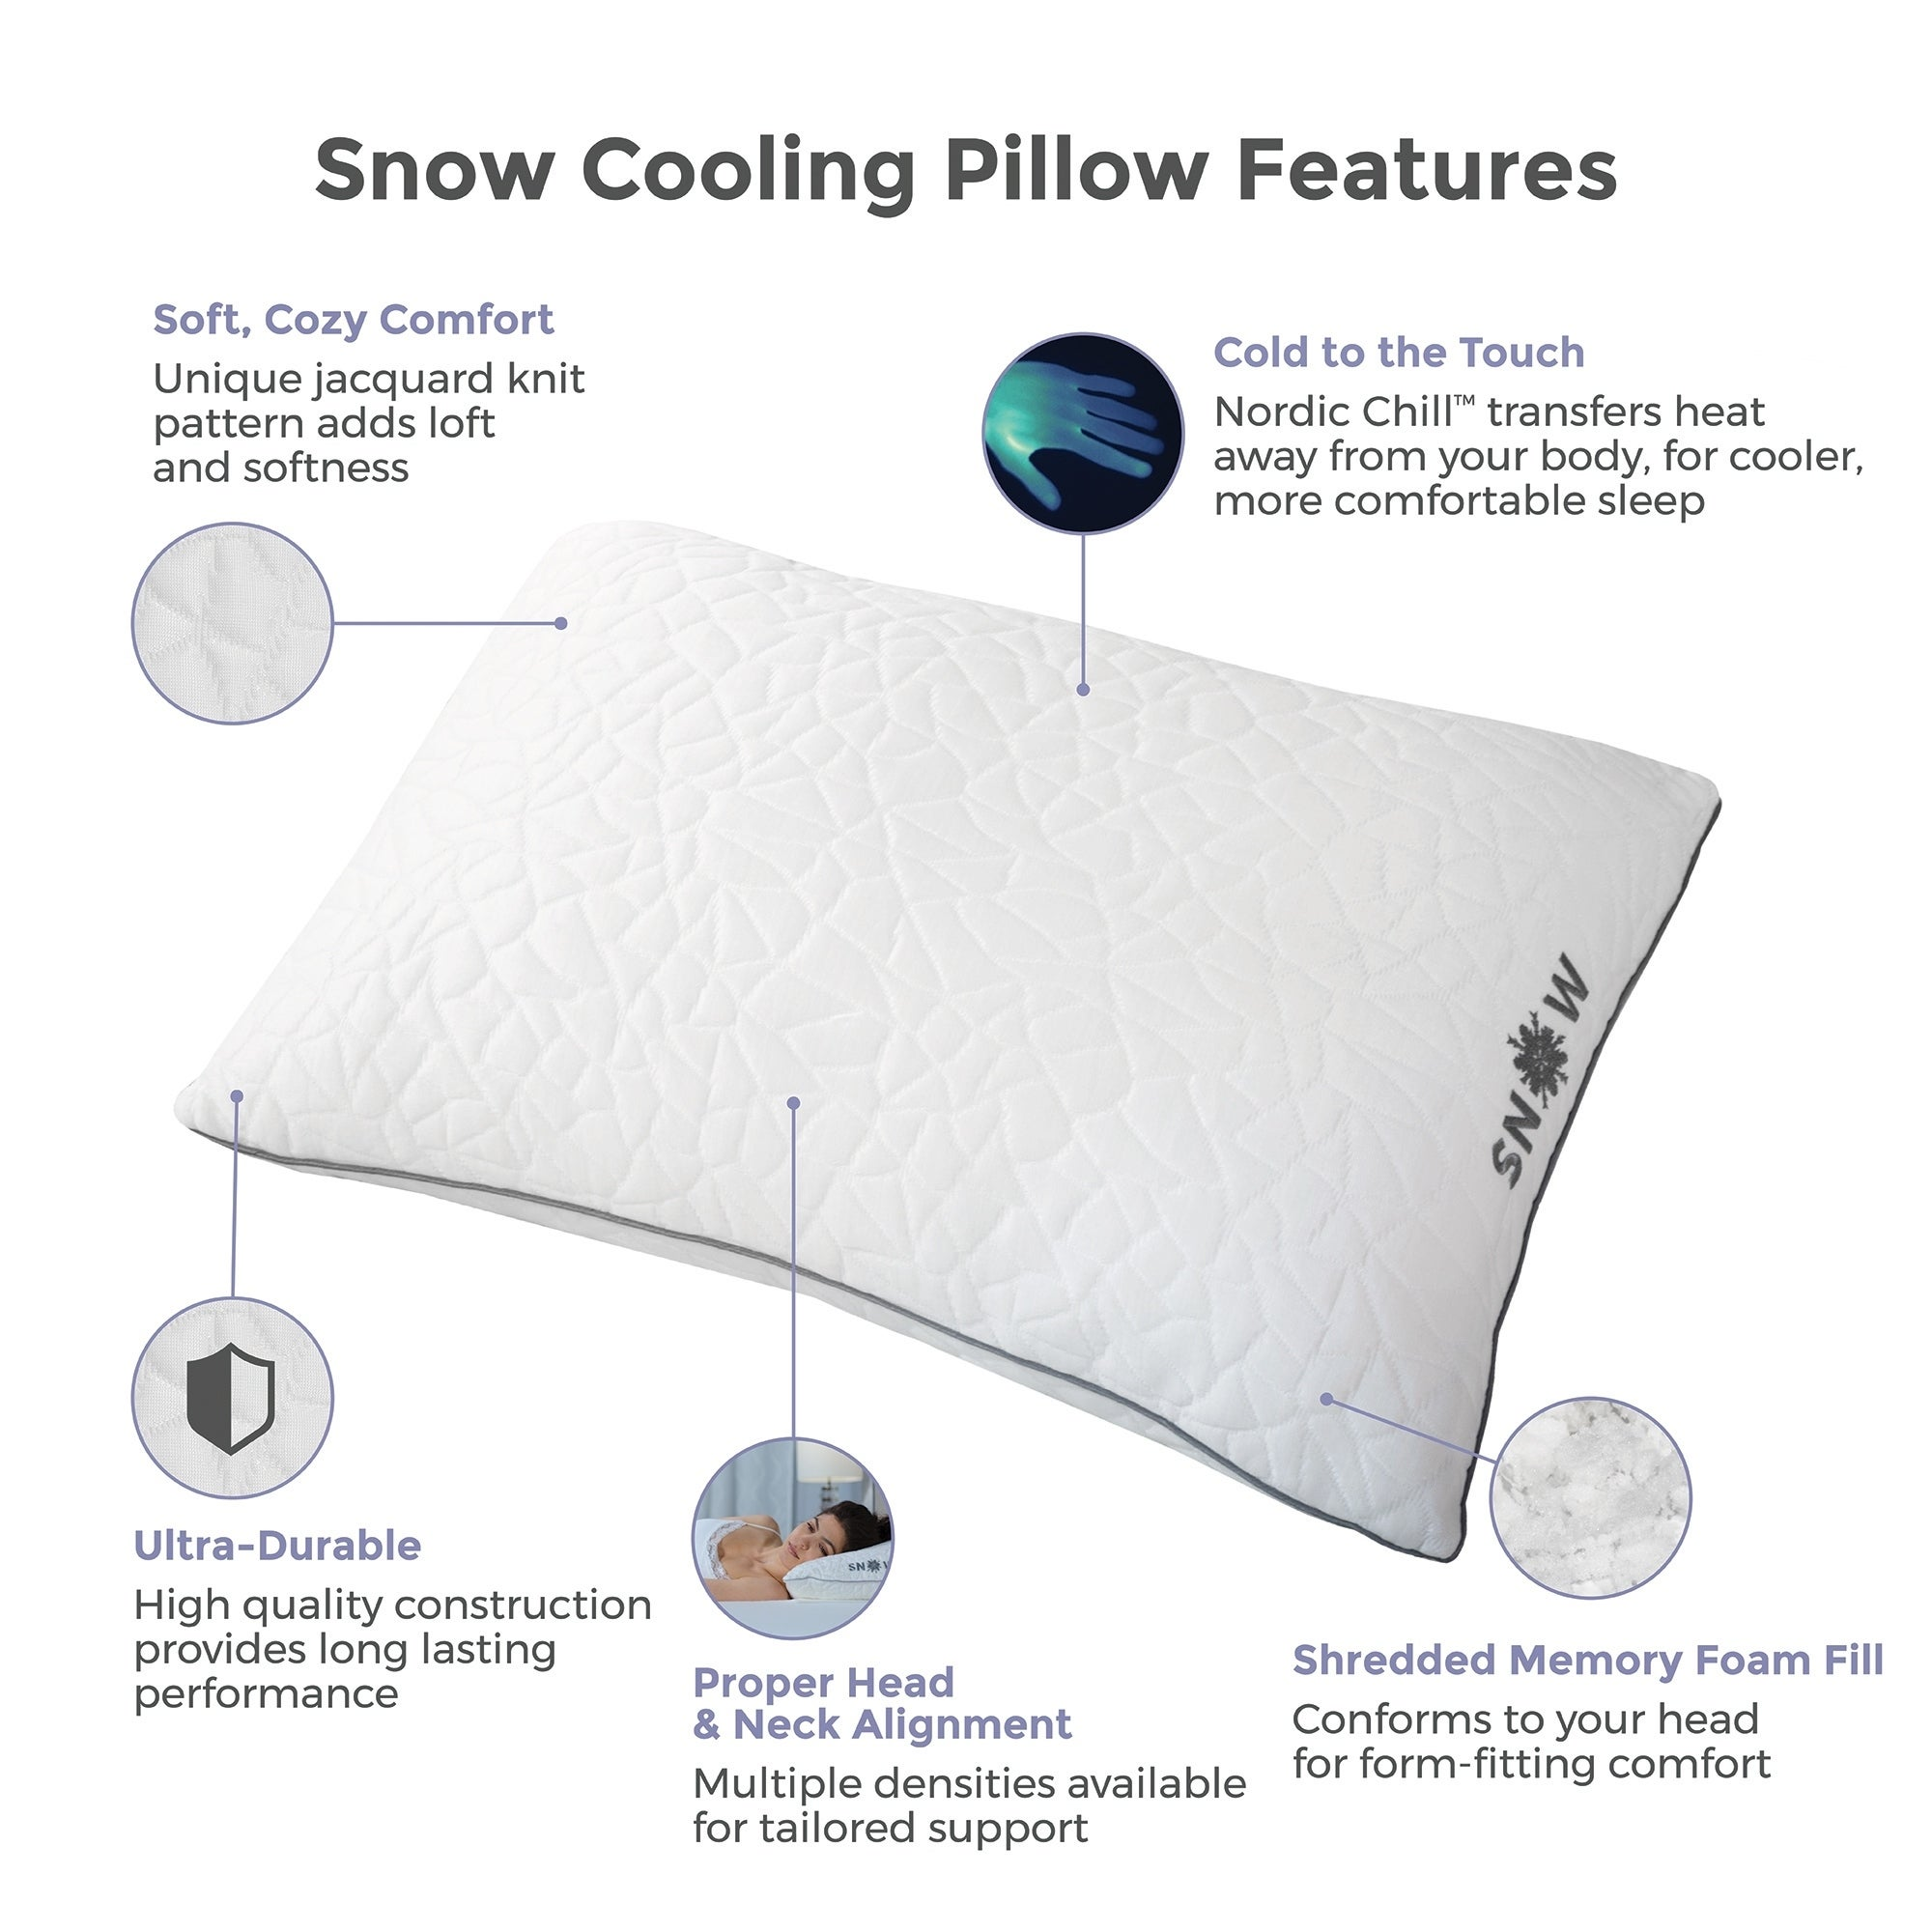 fabric contour with comfort soundly cooling sleep of cold products foam cover three soft cervical advanced gel copy promotes pillow this and memory